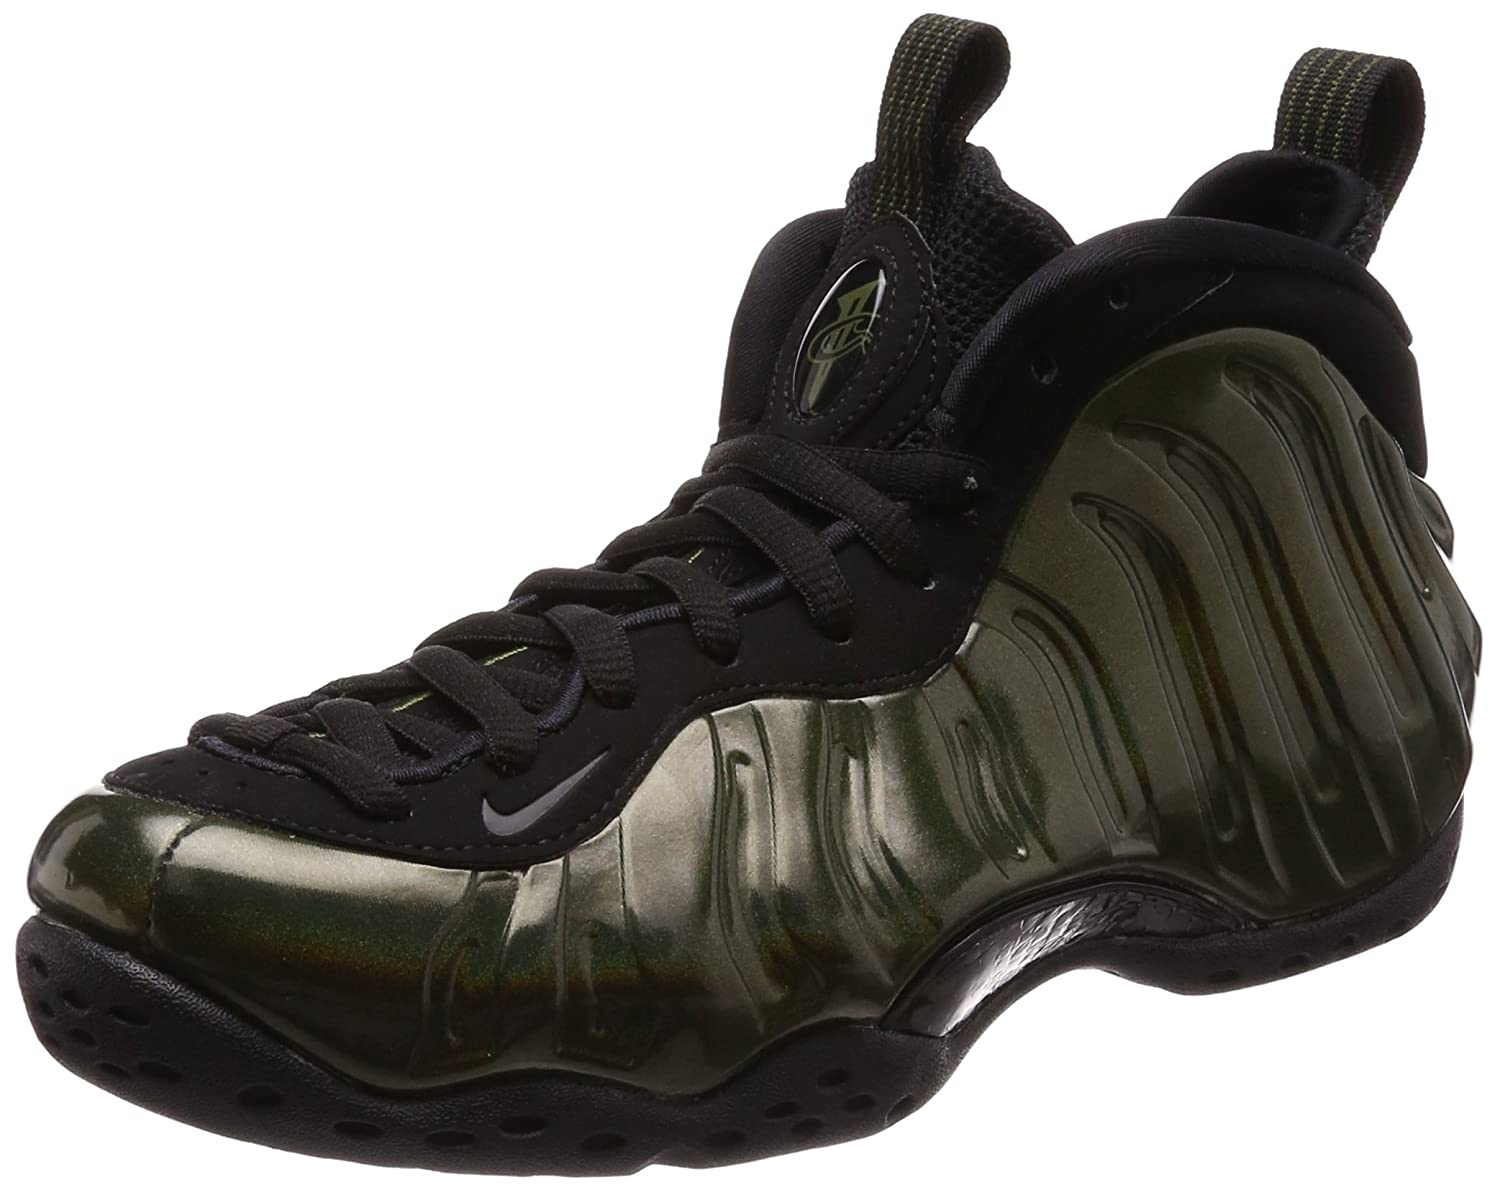 Authentic Nike Air Foamposite One Blue Mirror on sale for ...